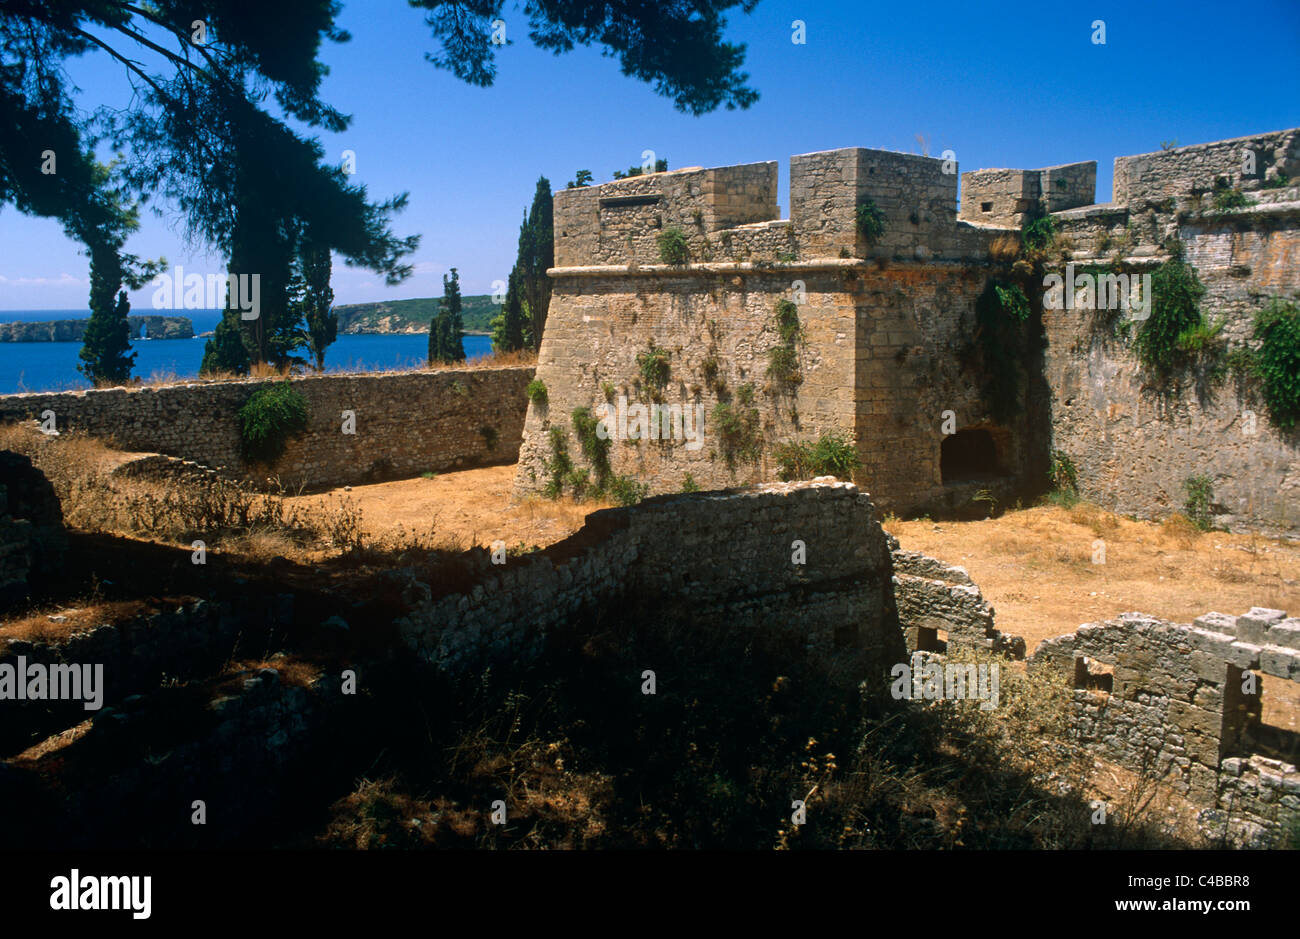 Greece, Peloponnese, Messinia, Pylos. Built by the Turks in the 1570s, Pylos's Neo Kastro, or 'New Castle', - Stock Image